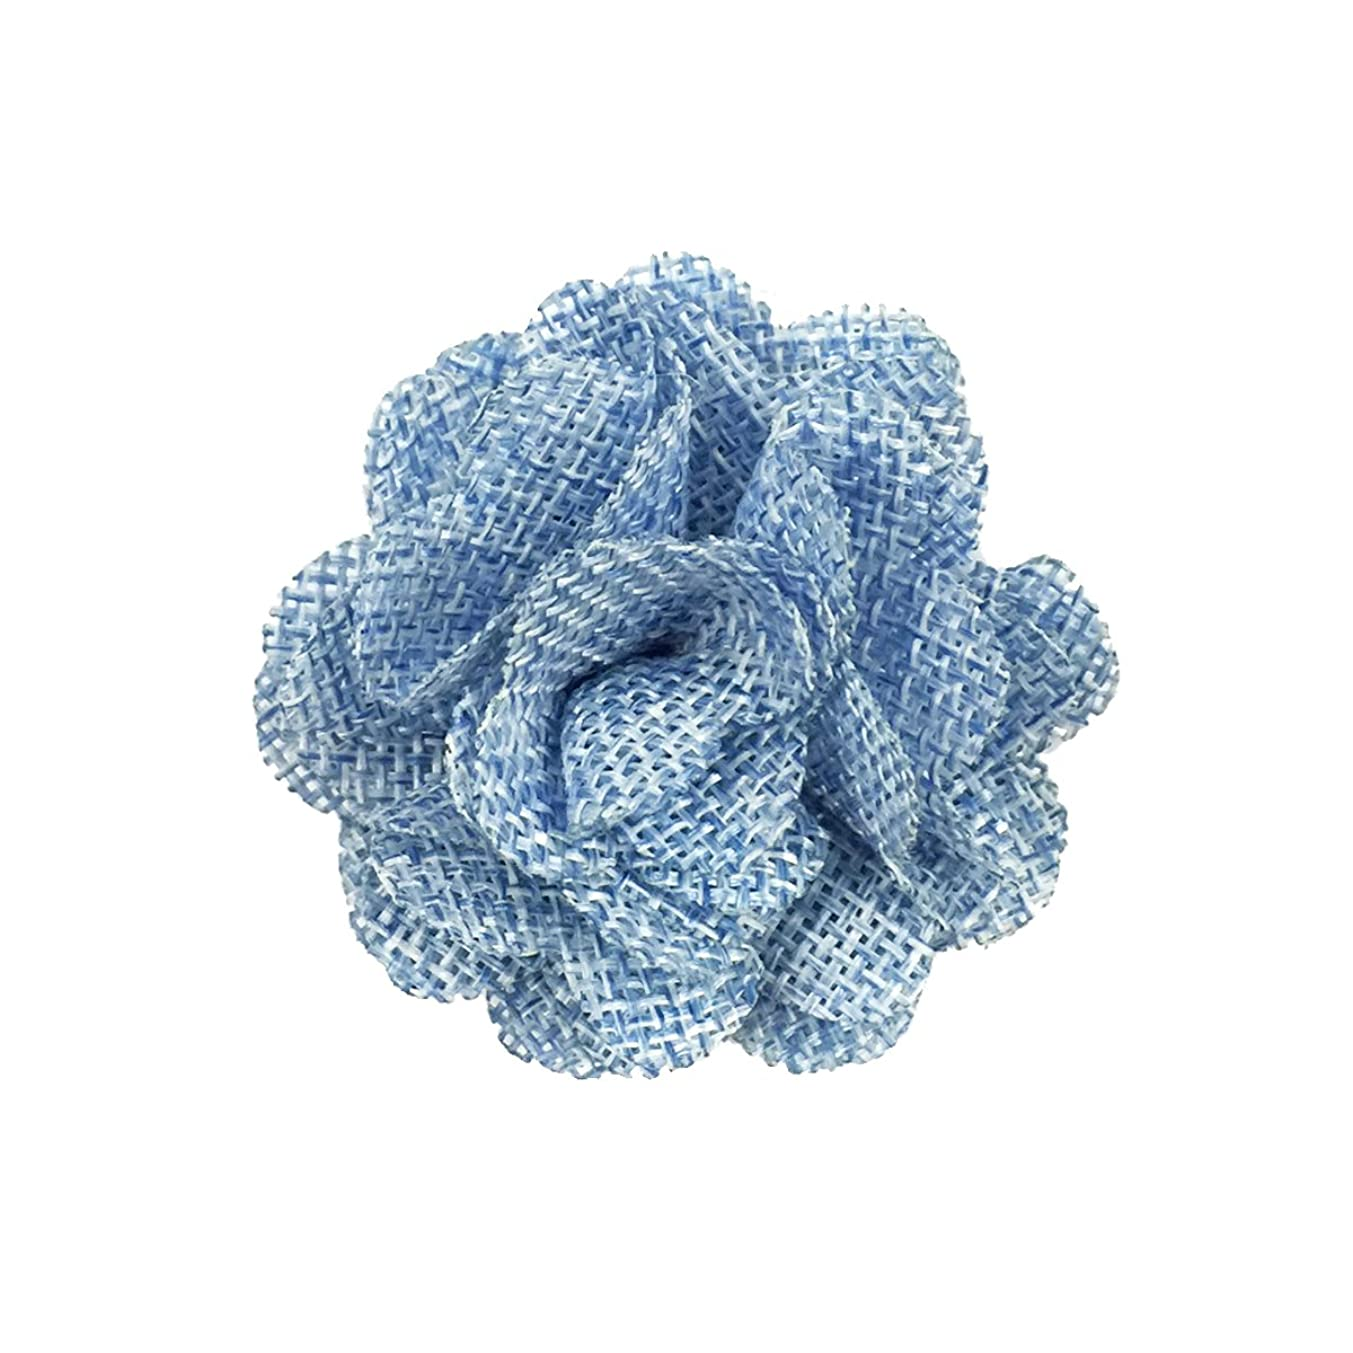 Wrapables Shabby Chic Burlap Rose Flower (Set of 20), Sky Blue